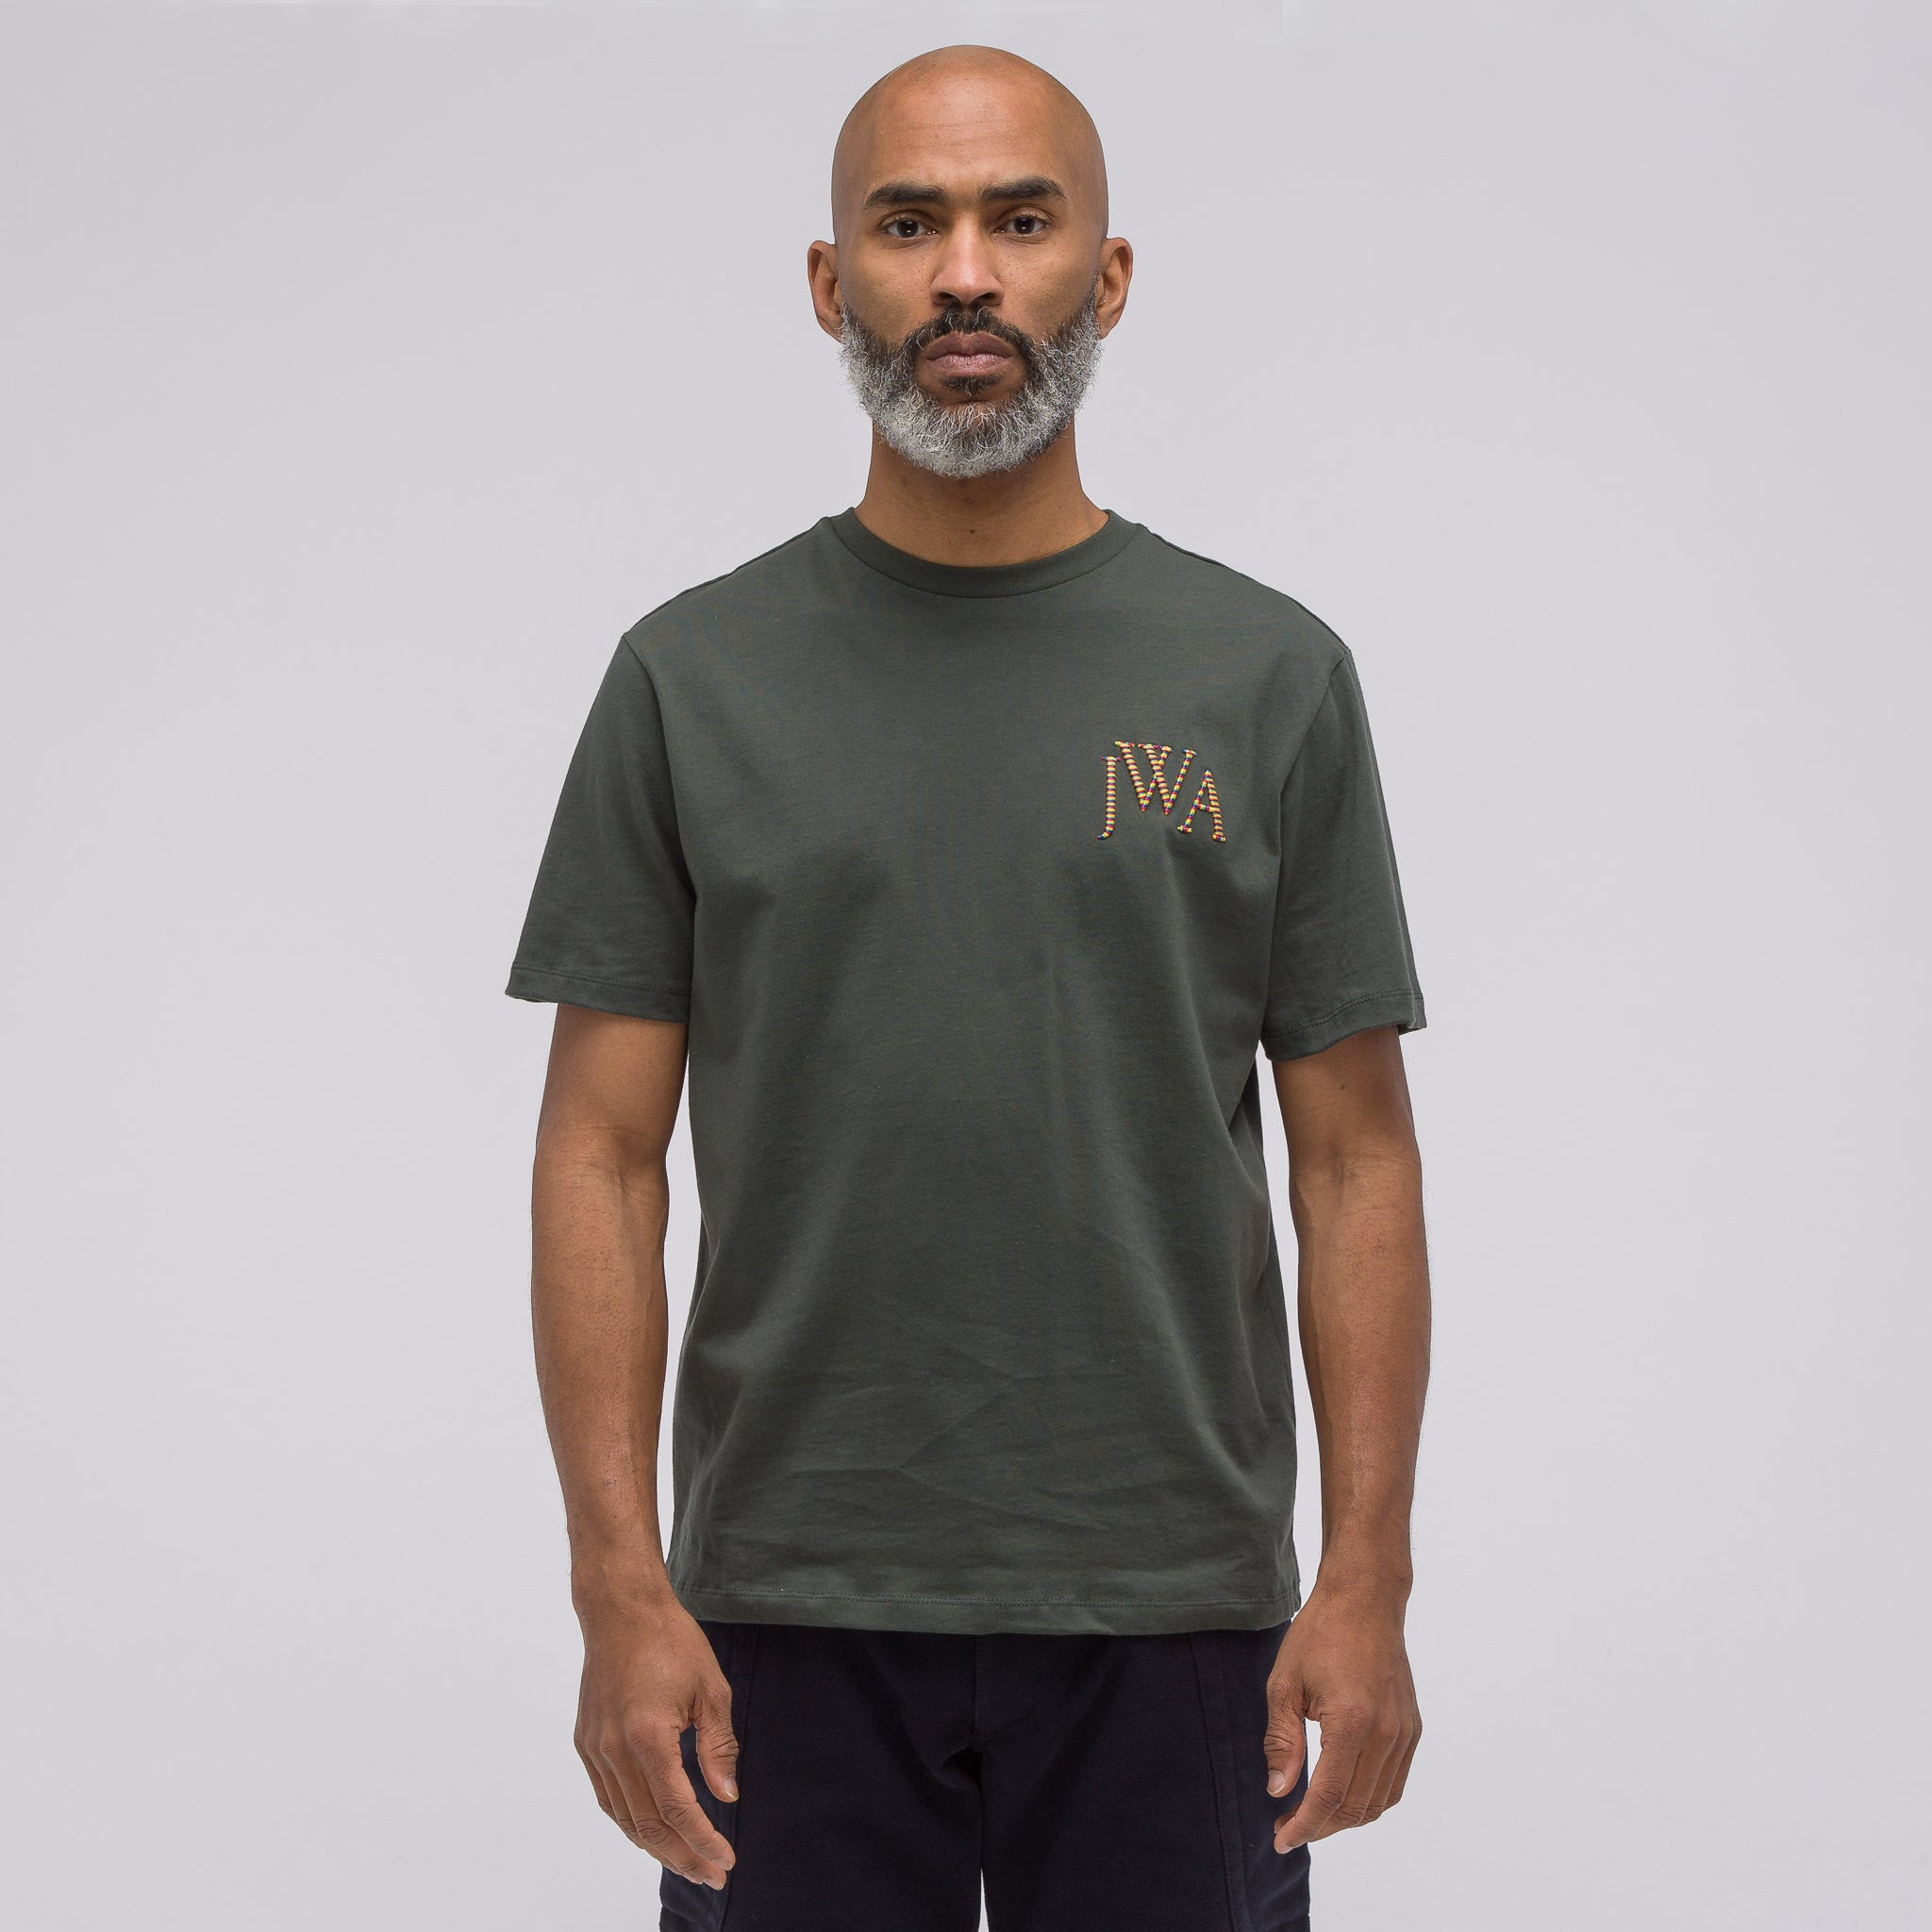 JWA Logo T-Shirt in Military Green